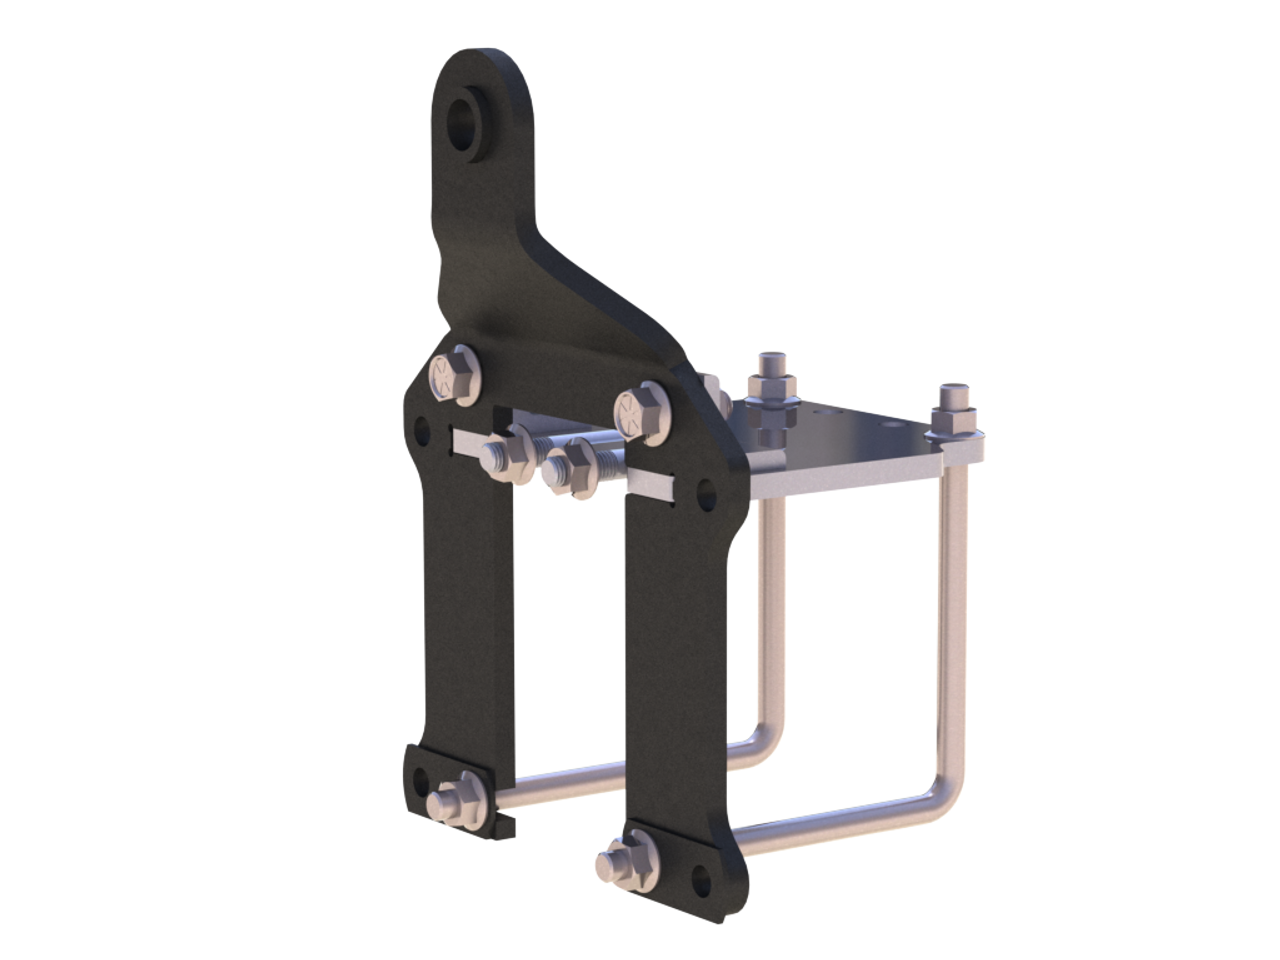 WTS Interlocking Tab and Slot design ensures brackets stay put.  Uses combination of L bolts and Row unit mounting bolts so bracket is pulled in two directions. Patent Pending